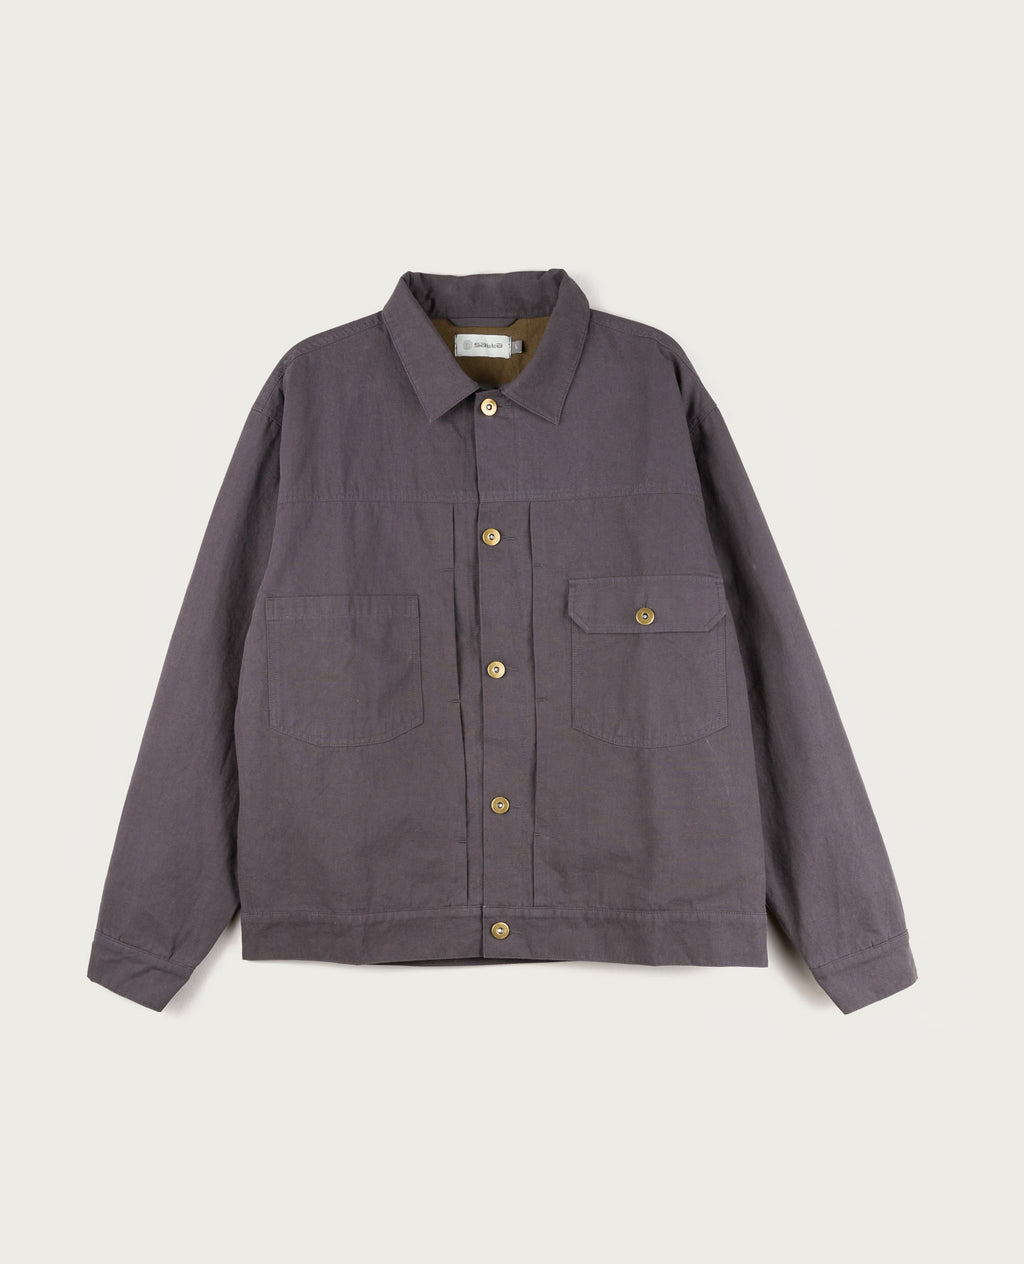 Satta Dao Jacket - Dark Navy | SATTA